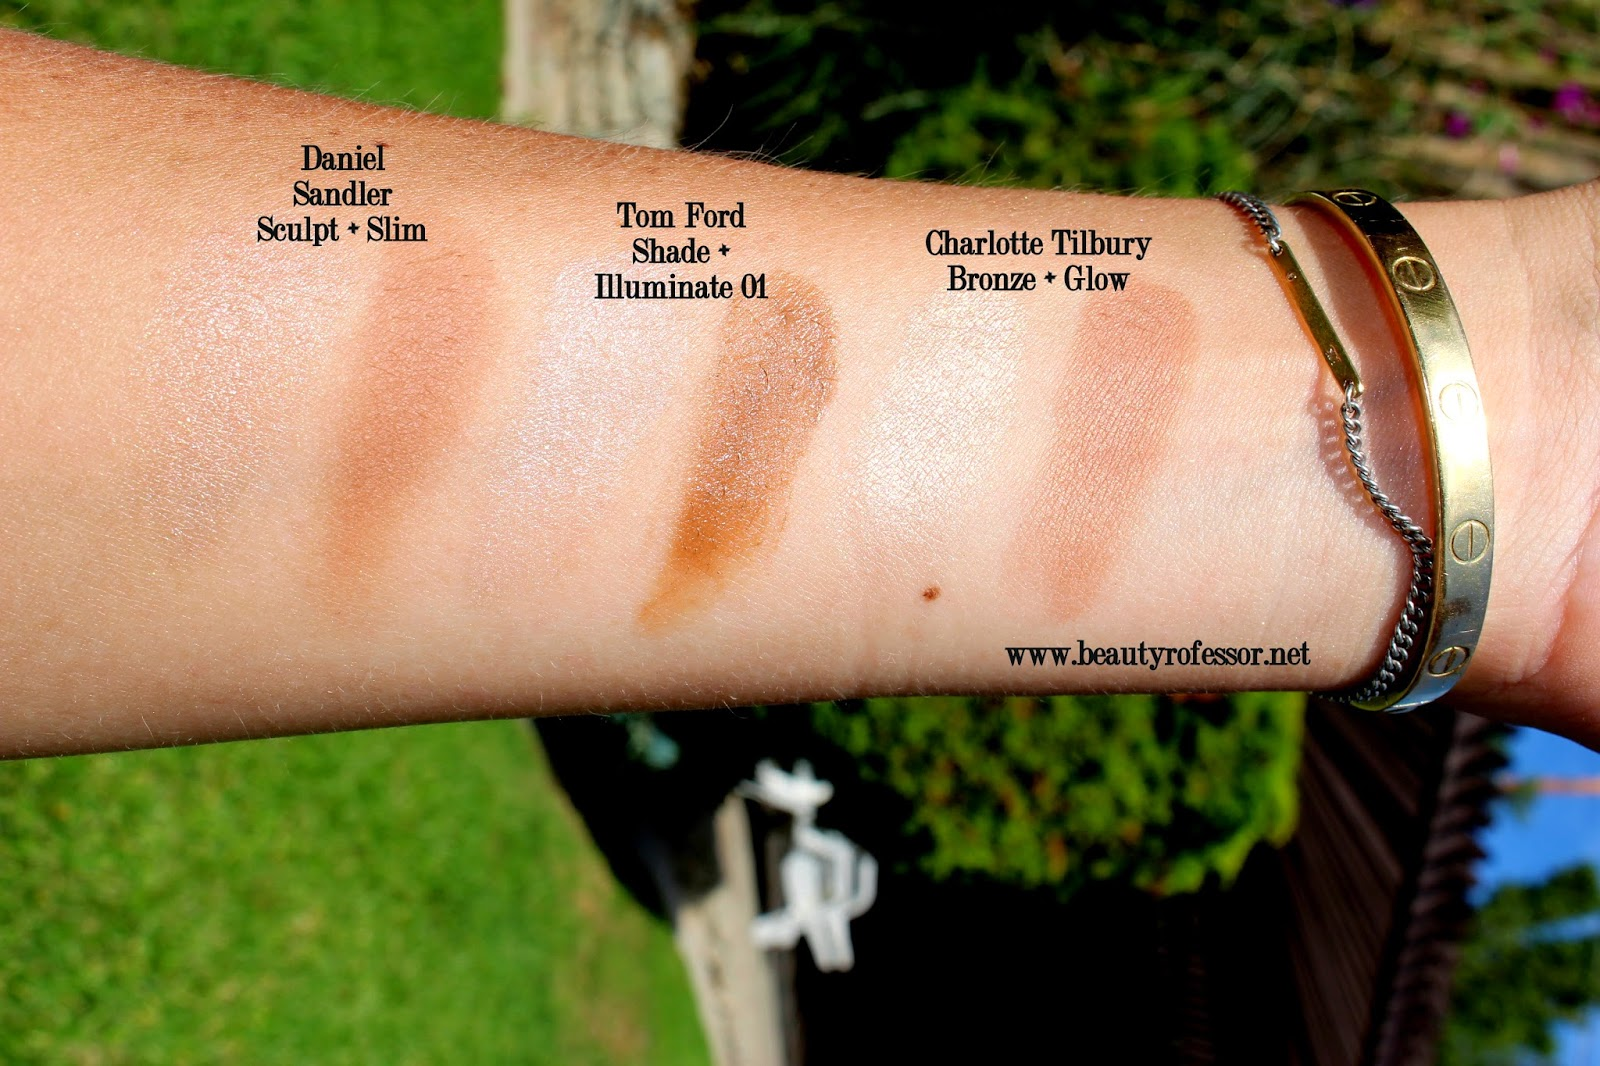 charlotte tilbury filmstar bronze and glow comparison swatches